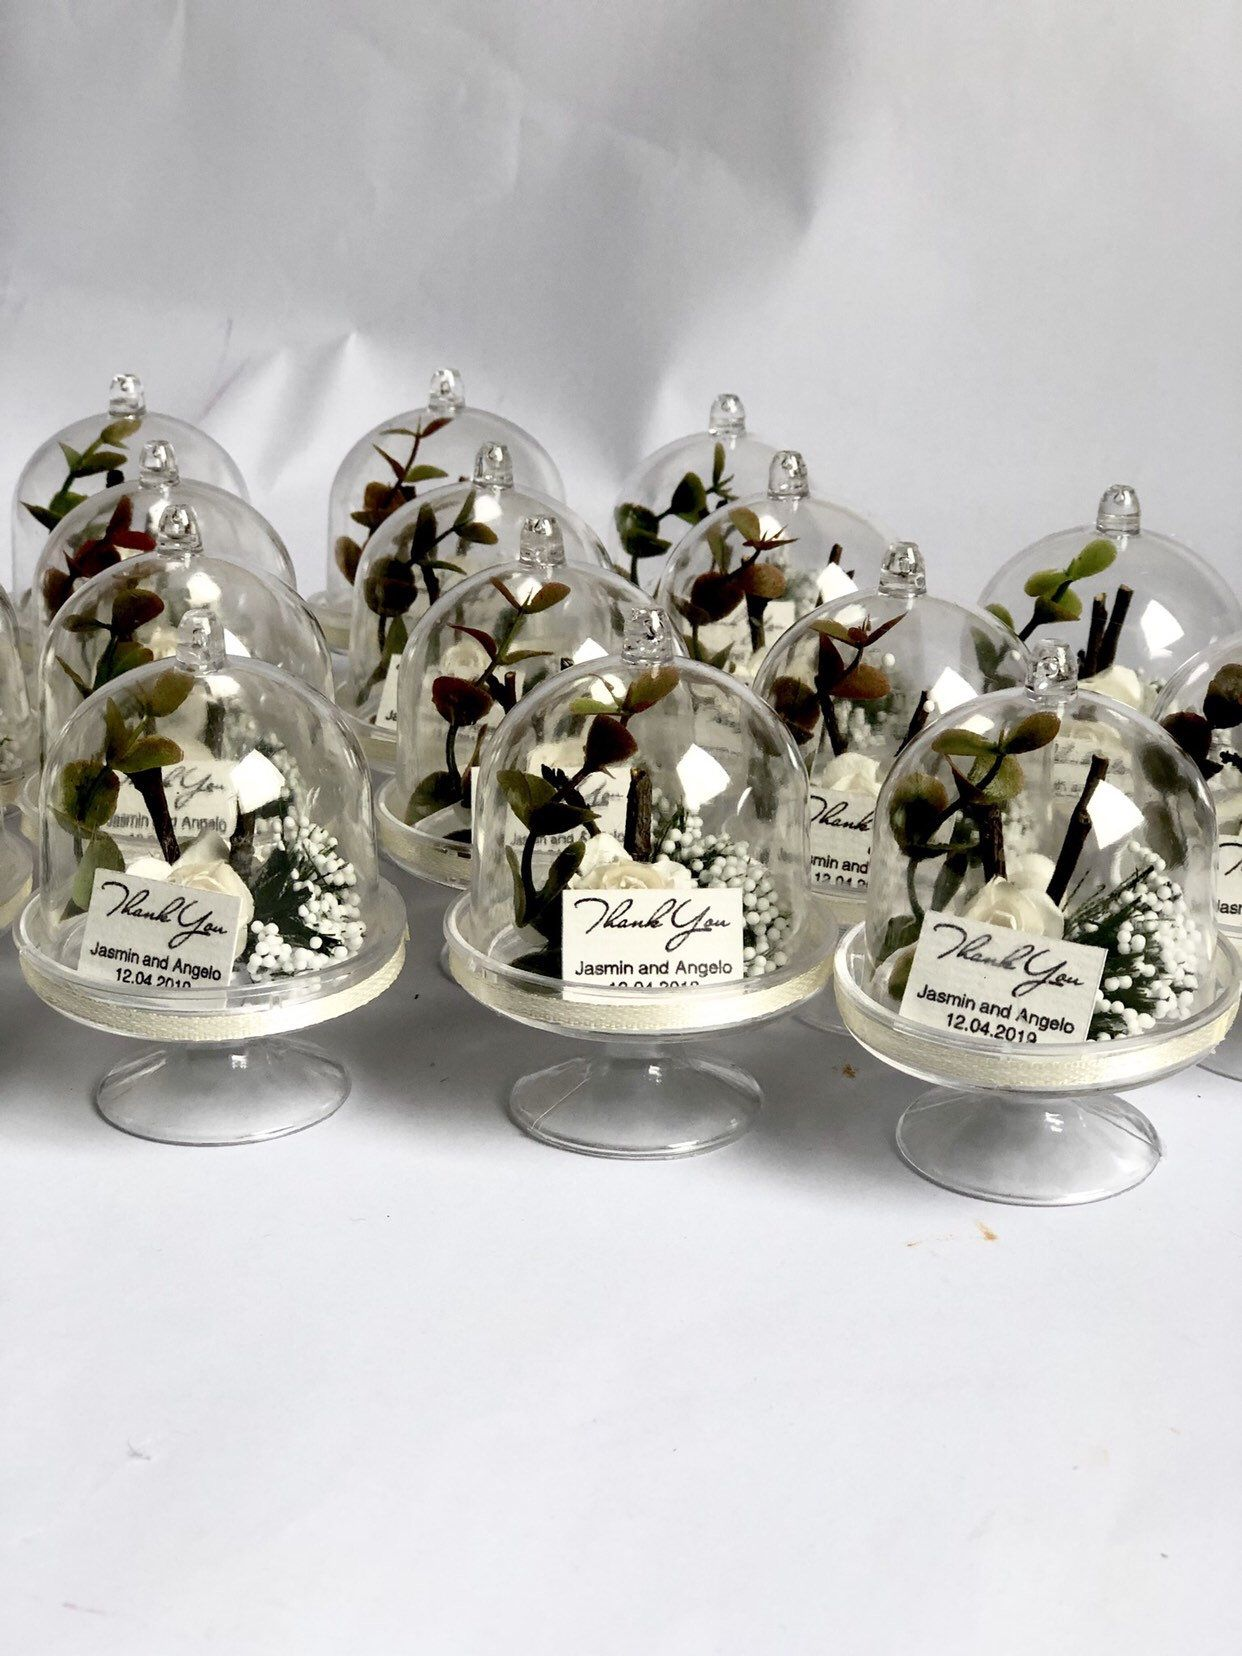 10pcs Wedding favors for guests, Wedding favors, Favors, Dome, Glass dome, Cloche dome, Custom favors, Beauty and the Beast, Party favors